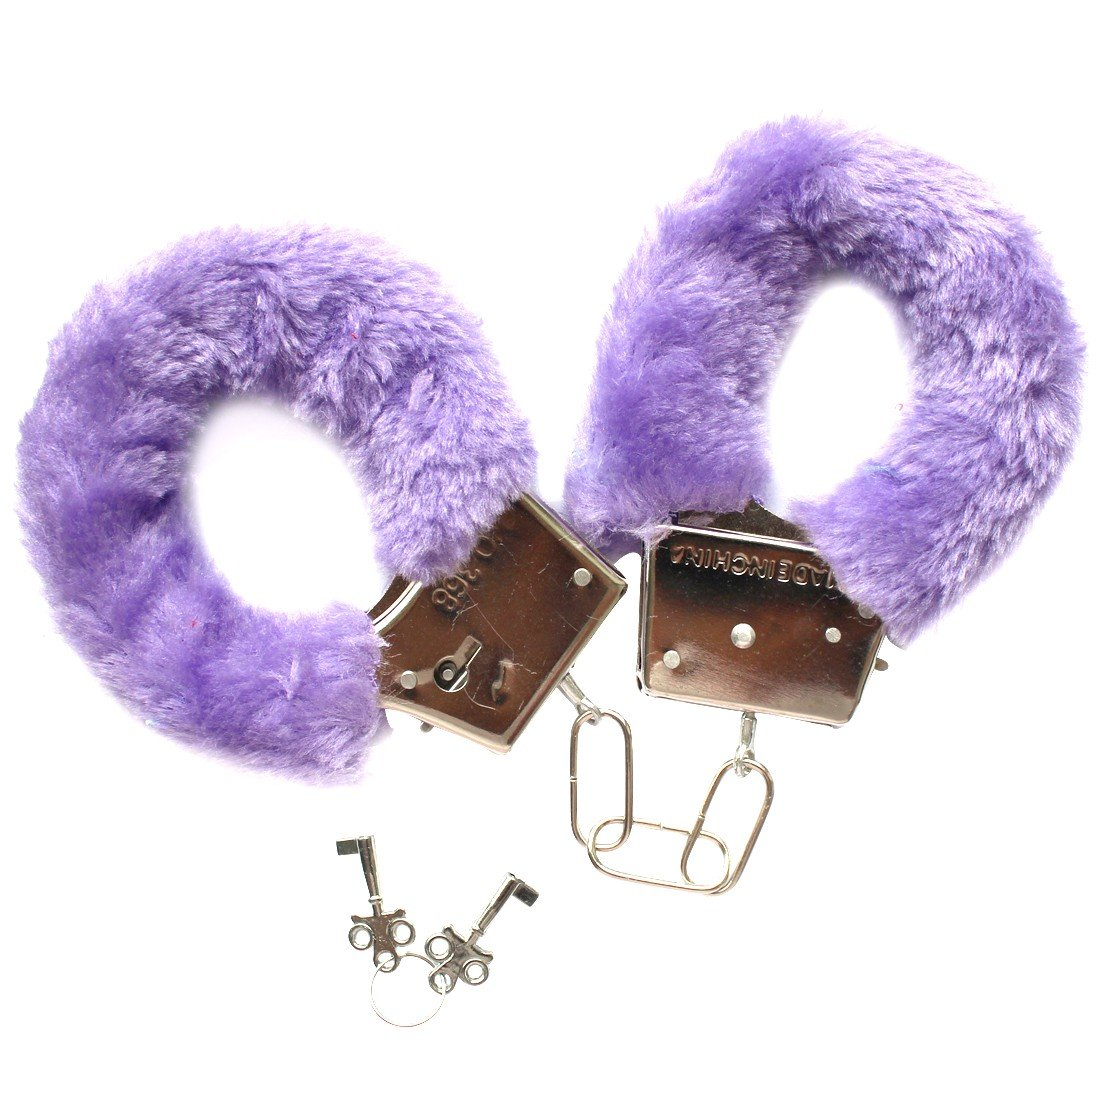 Yeahdor Soft Steel Fuzzy Furry Cuffs Working Metal Handcuffs for Adult Couples Sex Play Purple One Size